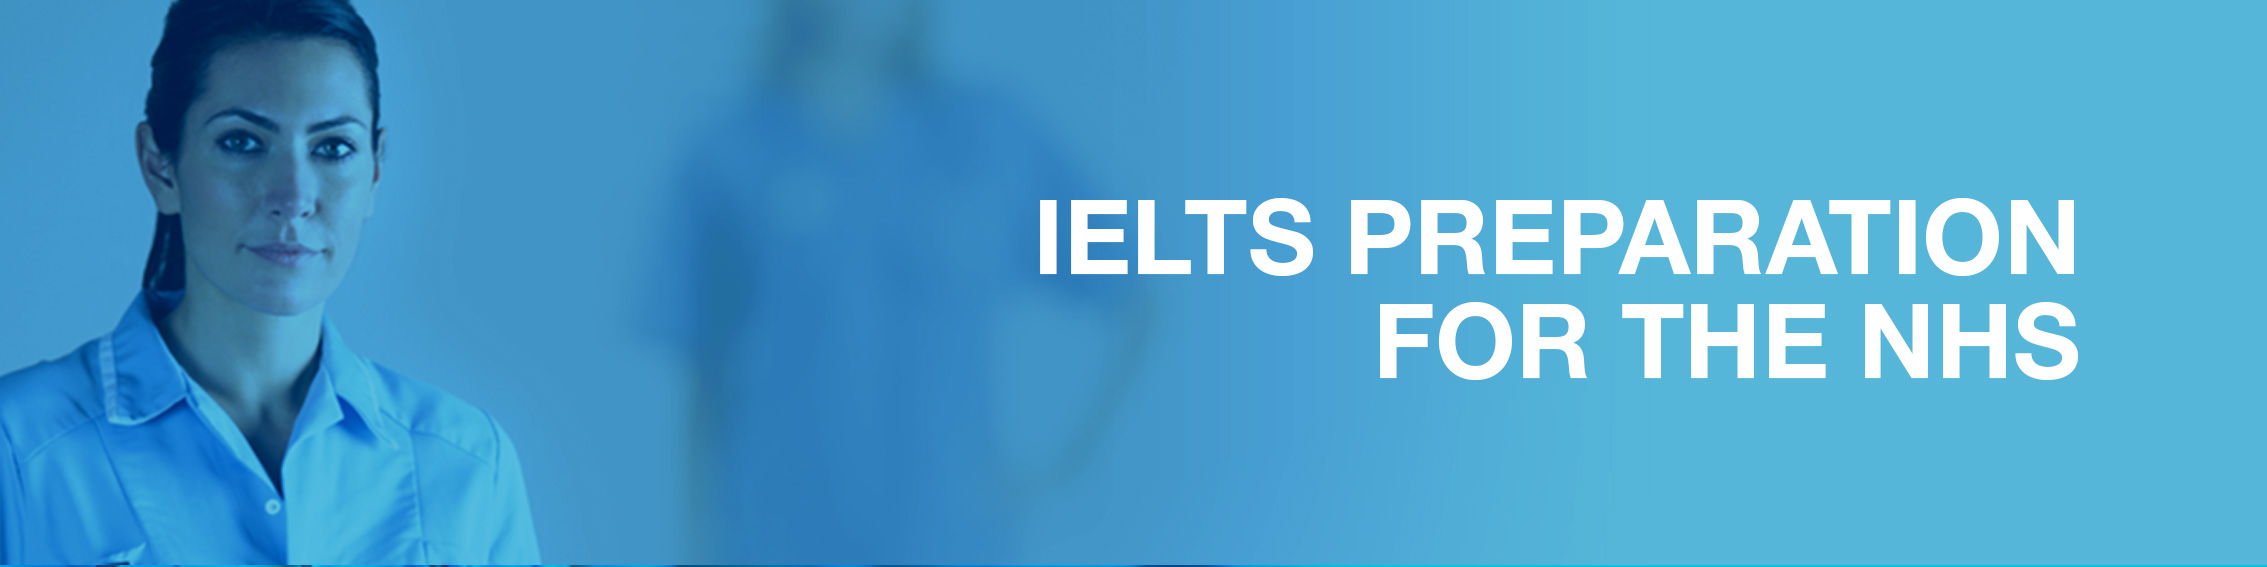 IELTS Preparation for the NHS